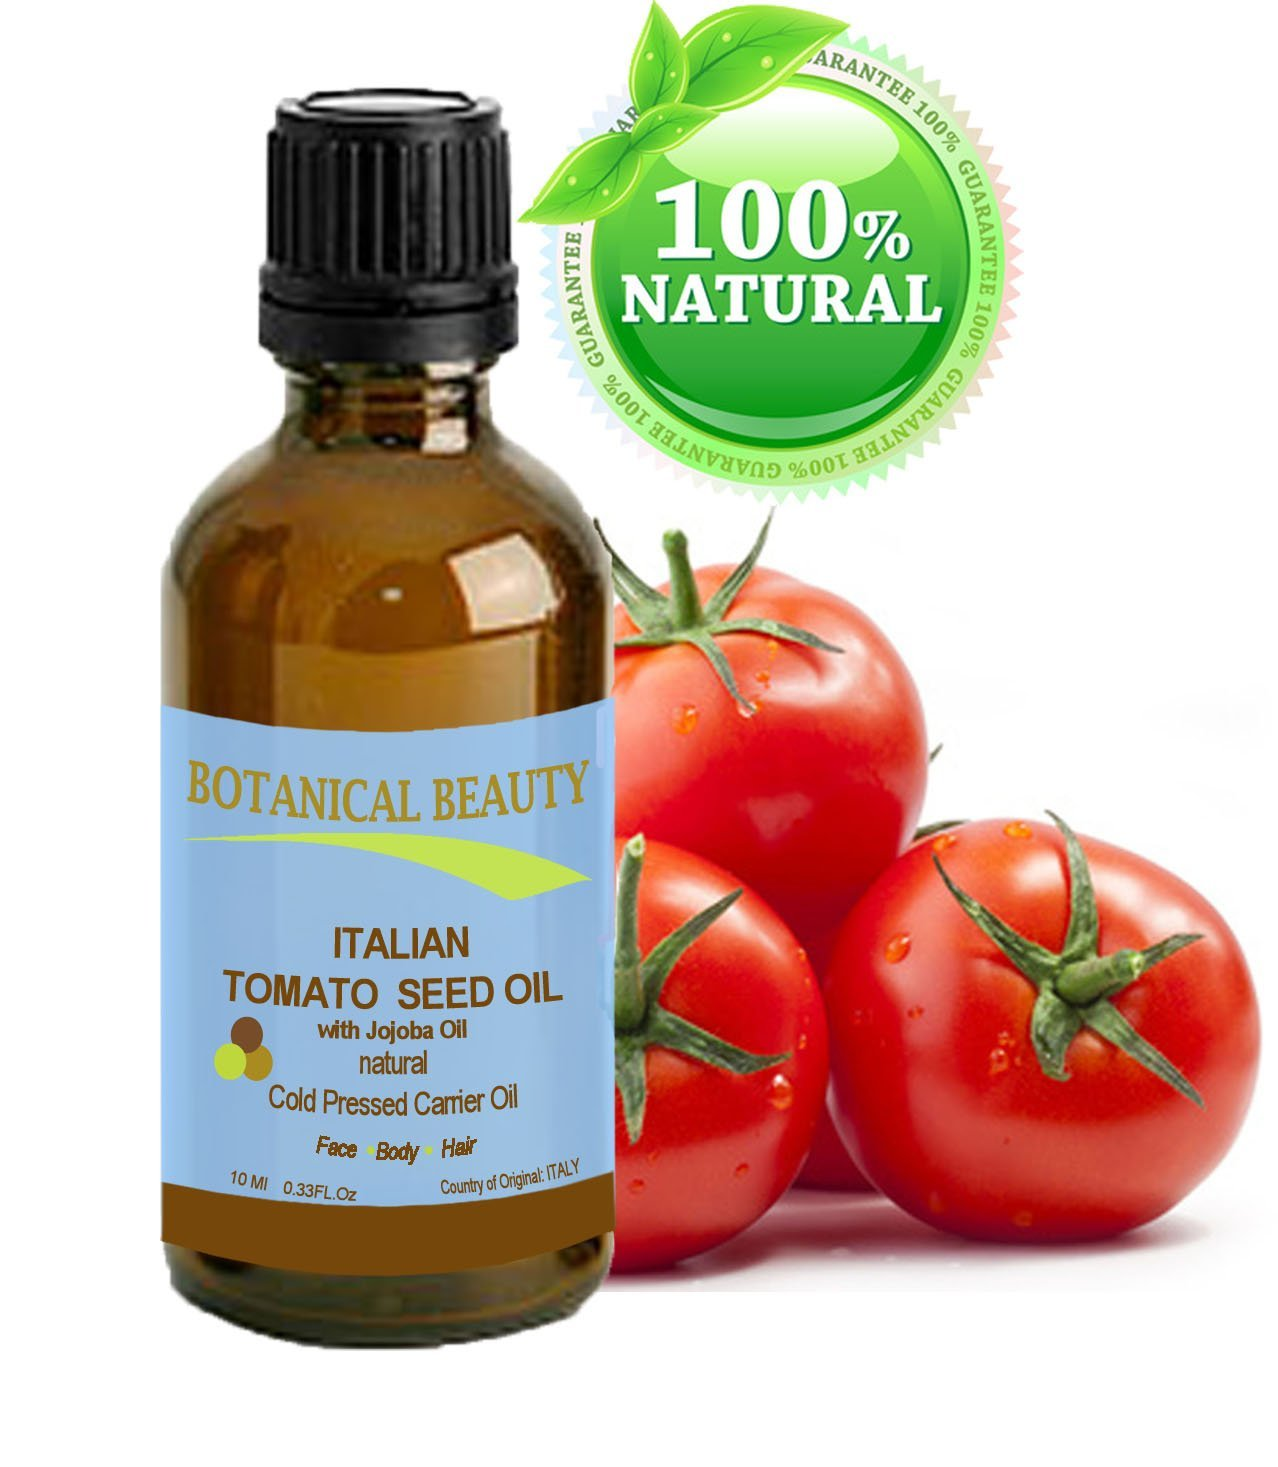 """ITALIAN TOMATO SEED OIL 100% Natural/Cold Pressed Carrier Oil. For Face, Body, Lip, and Hair. 0.33fl oz - 10ml. """"one of the richest natural sources of lycopene, lutein, zeaxanthin, phtosterols and minerals."""""""